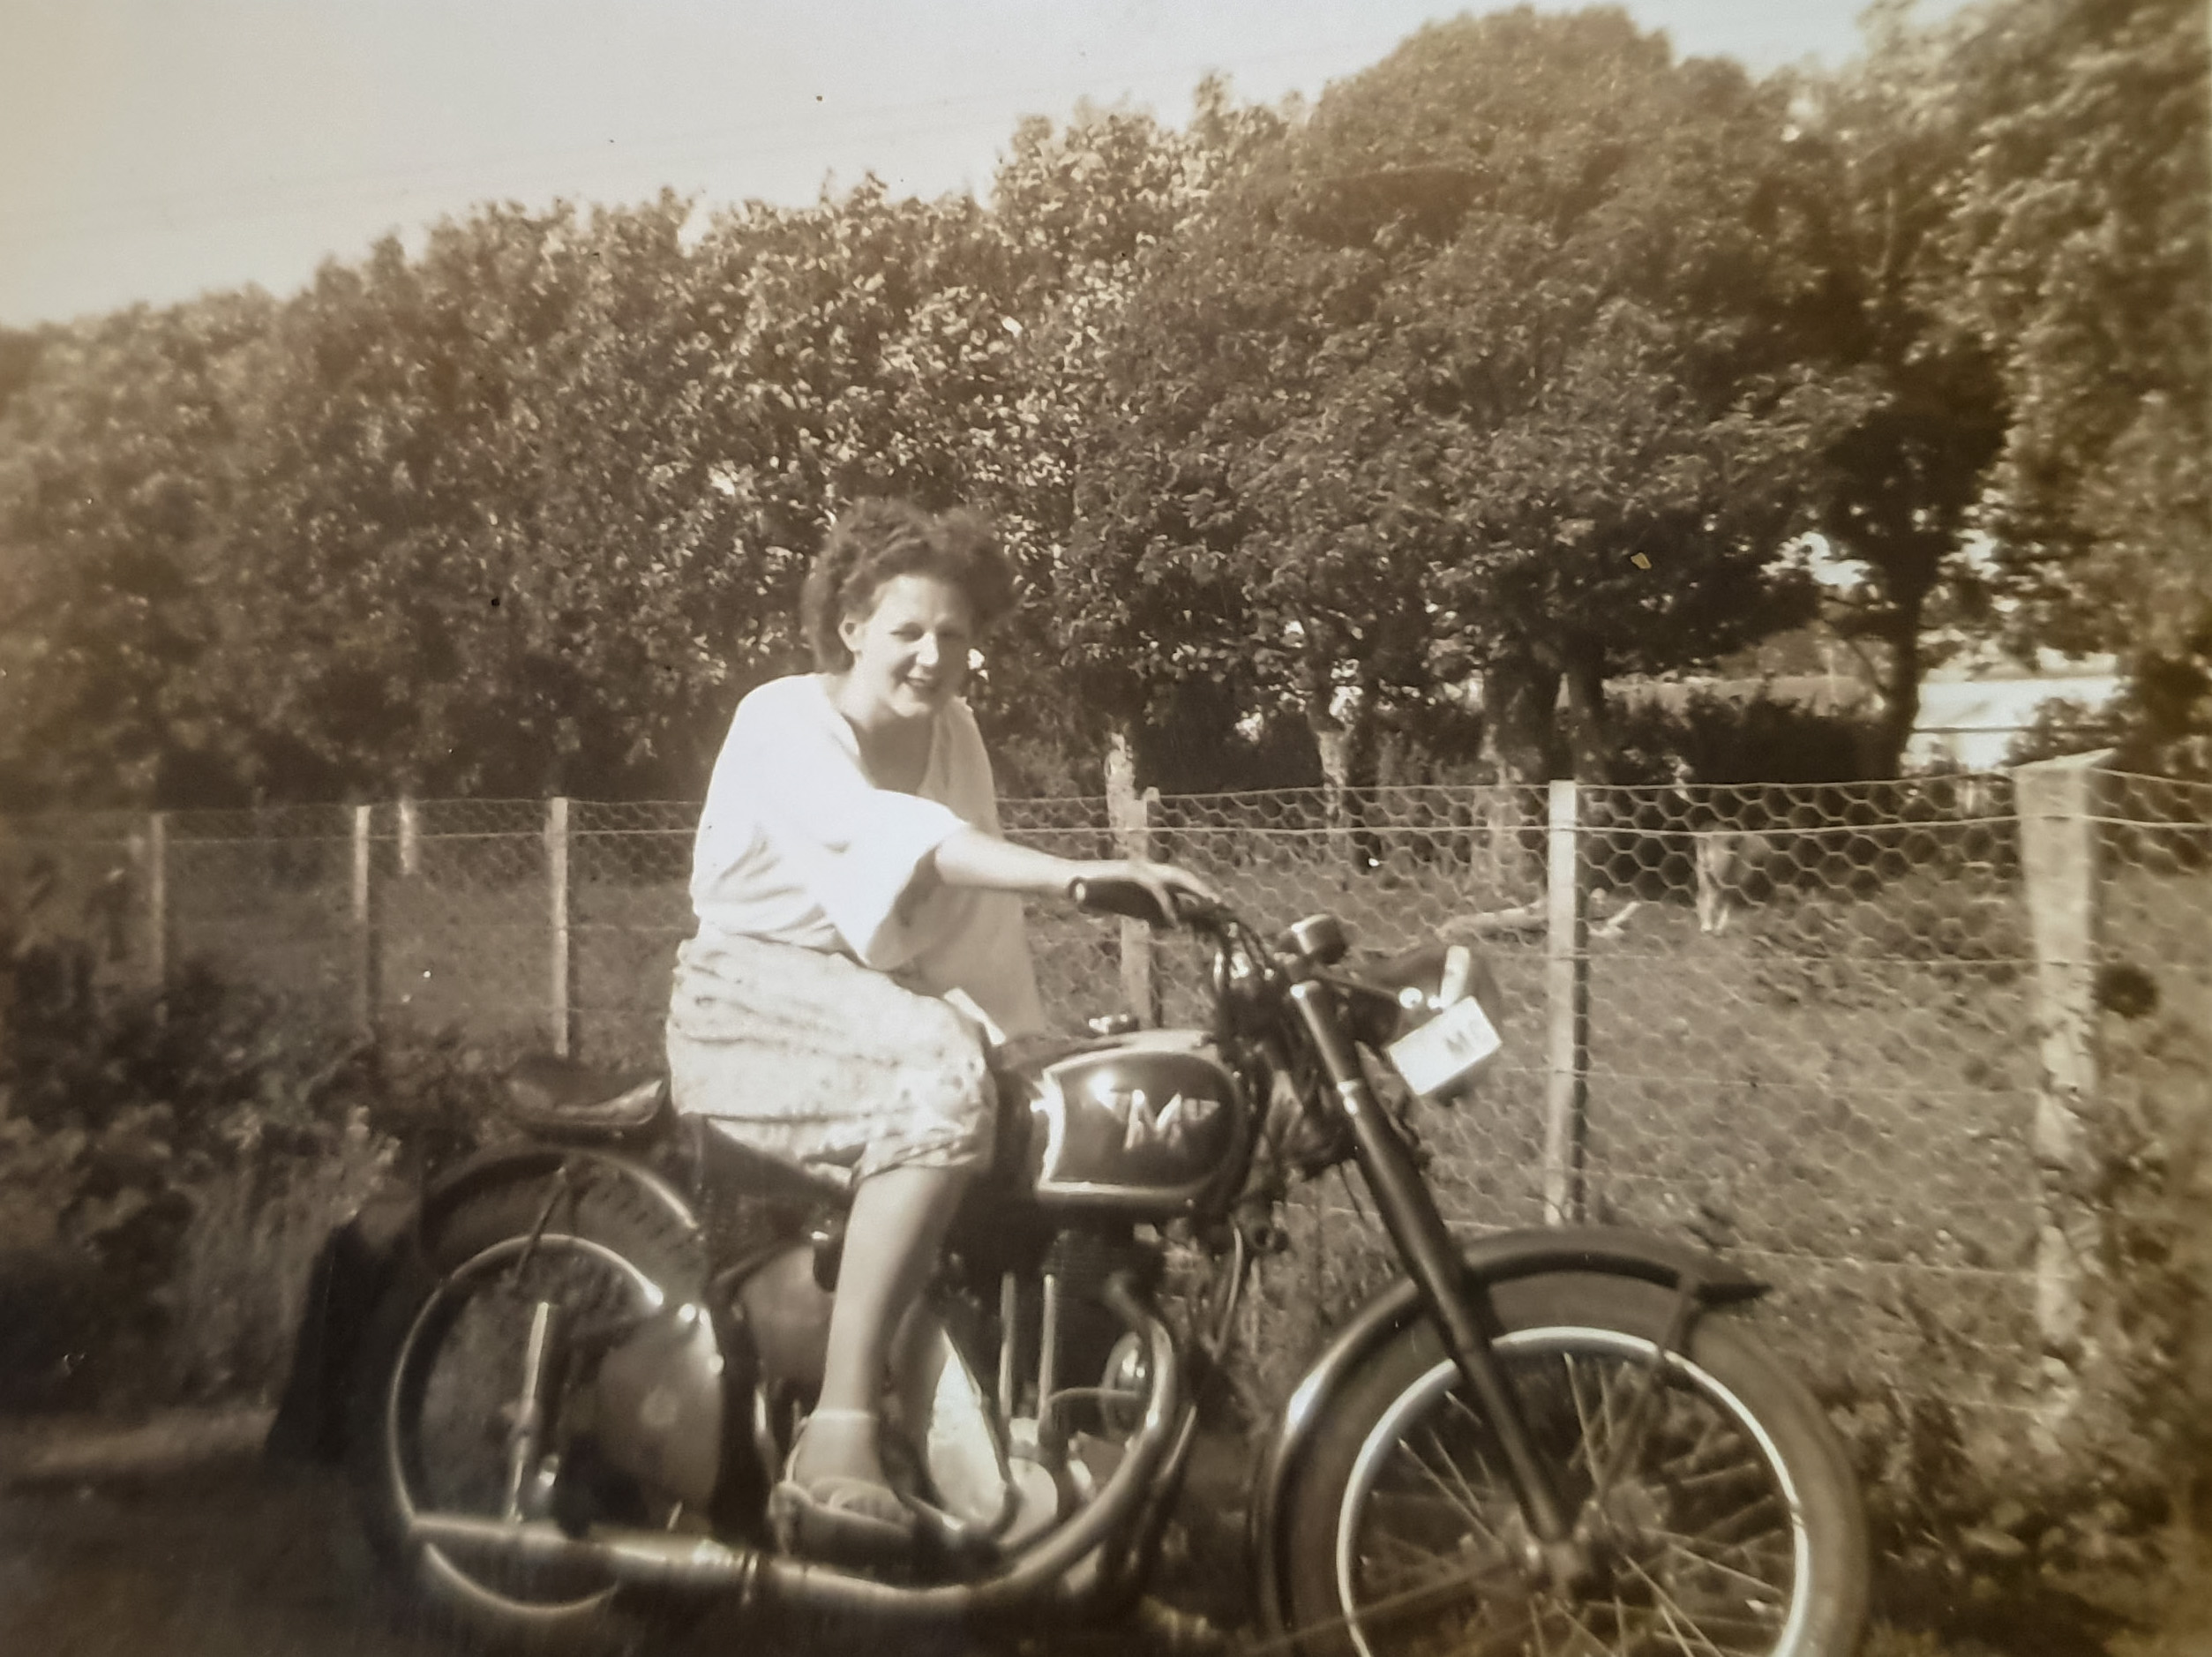 Les's Mum on her Dad's motorbike